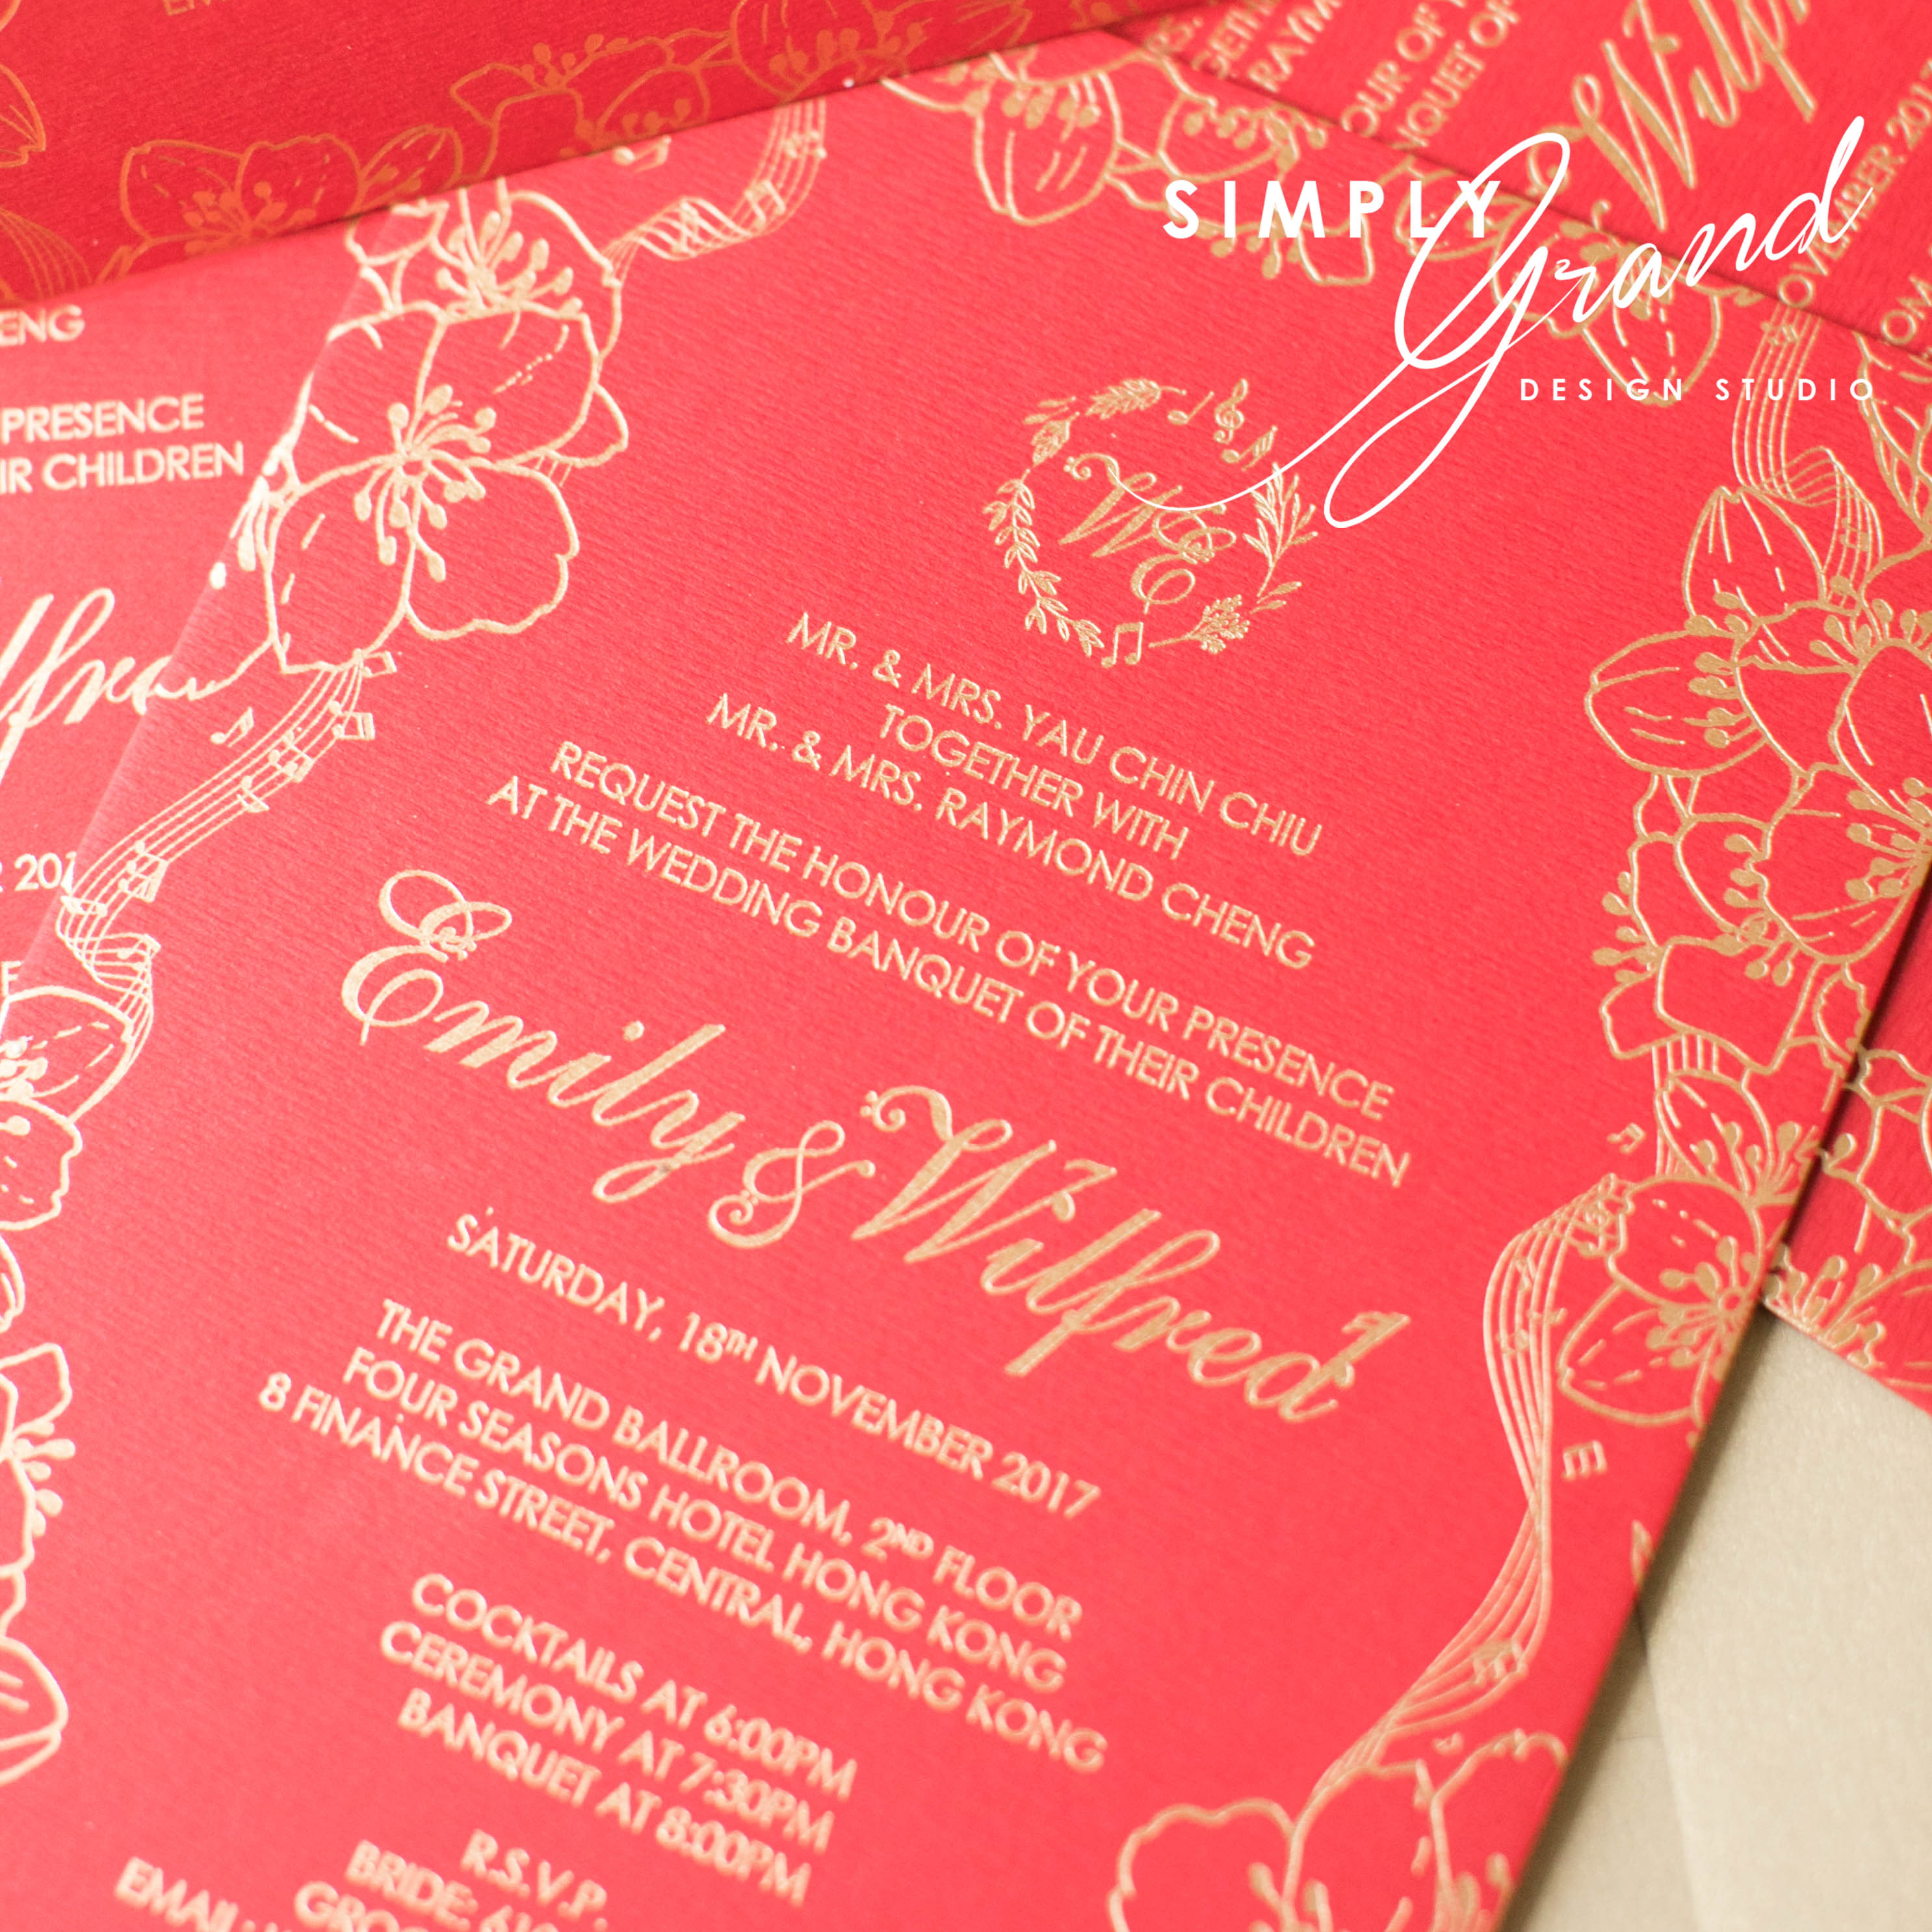 Simply_Grand_Production_Stationery_Invitation_Card_7_1